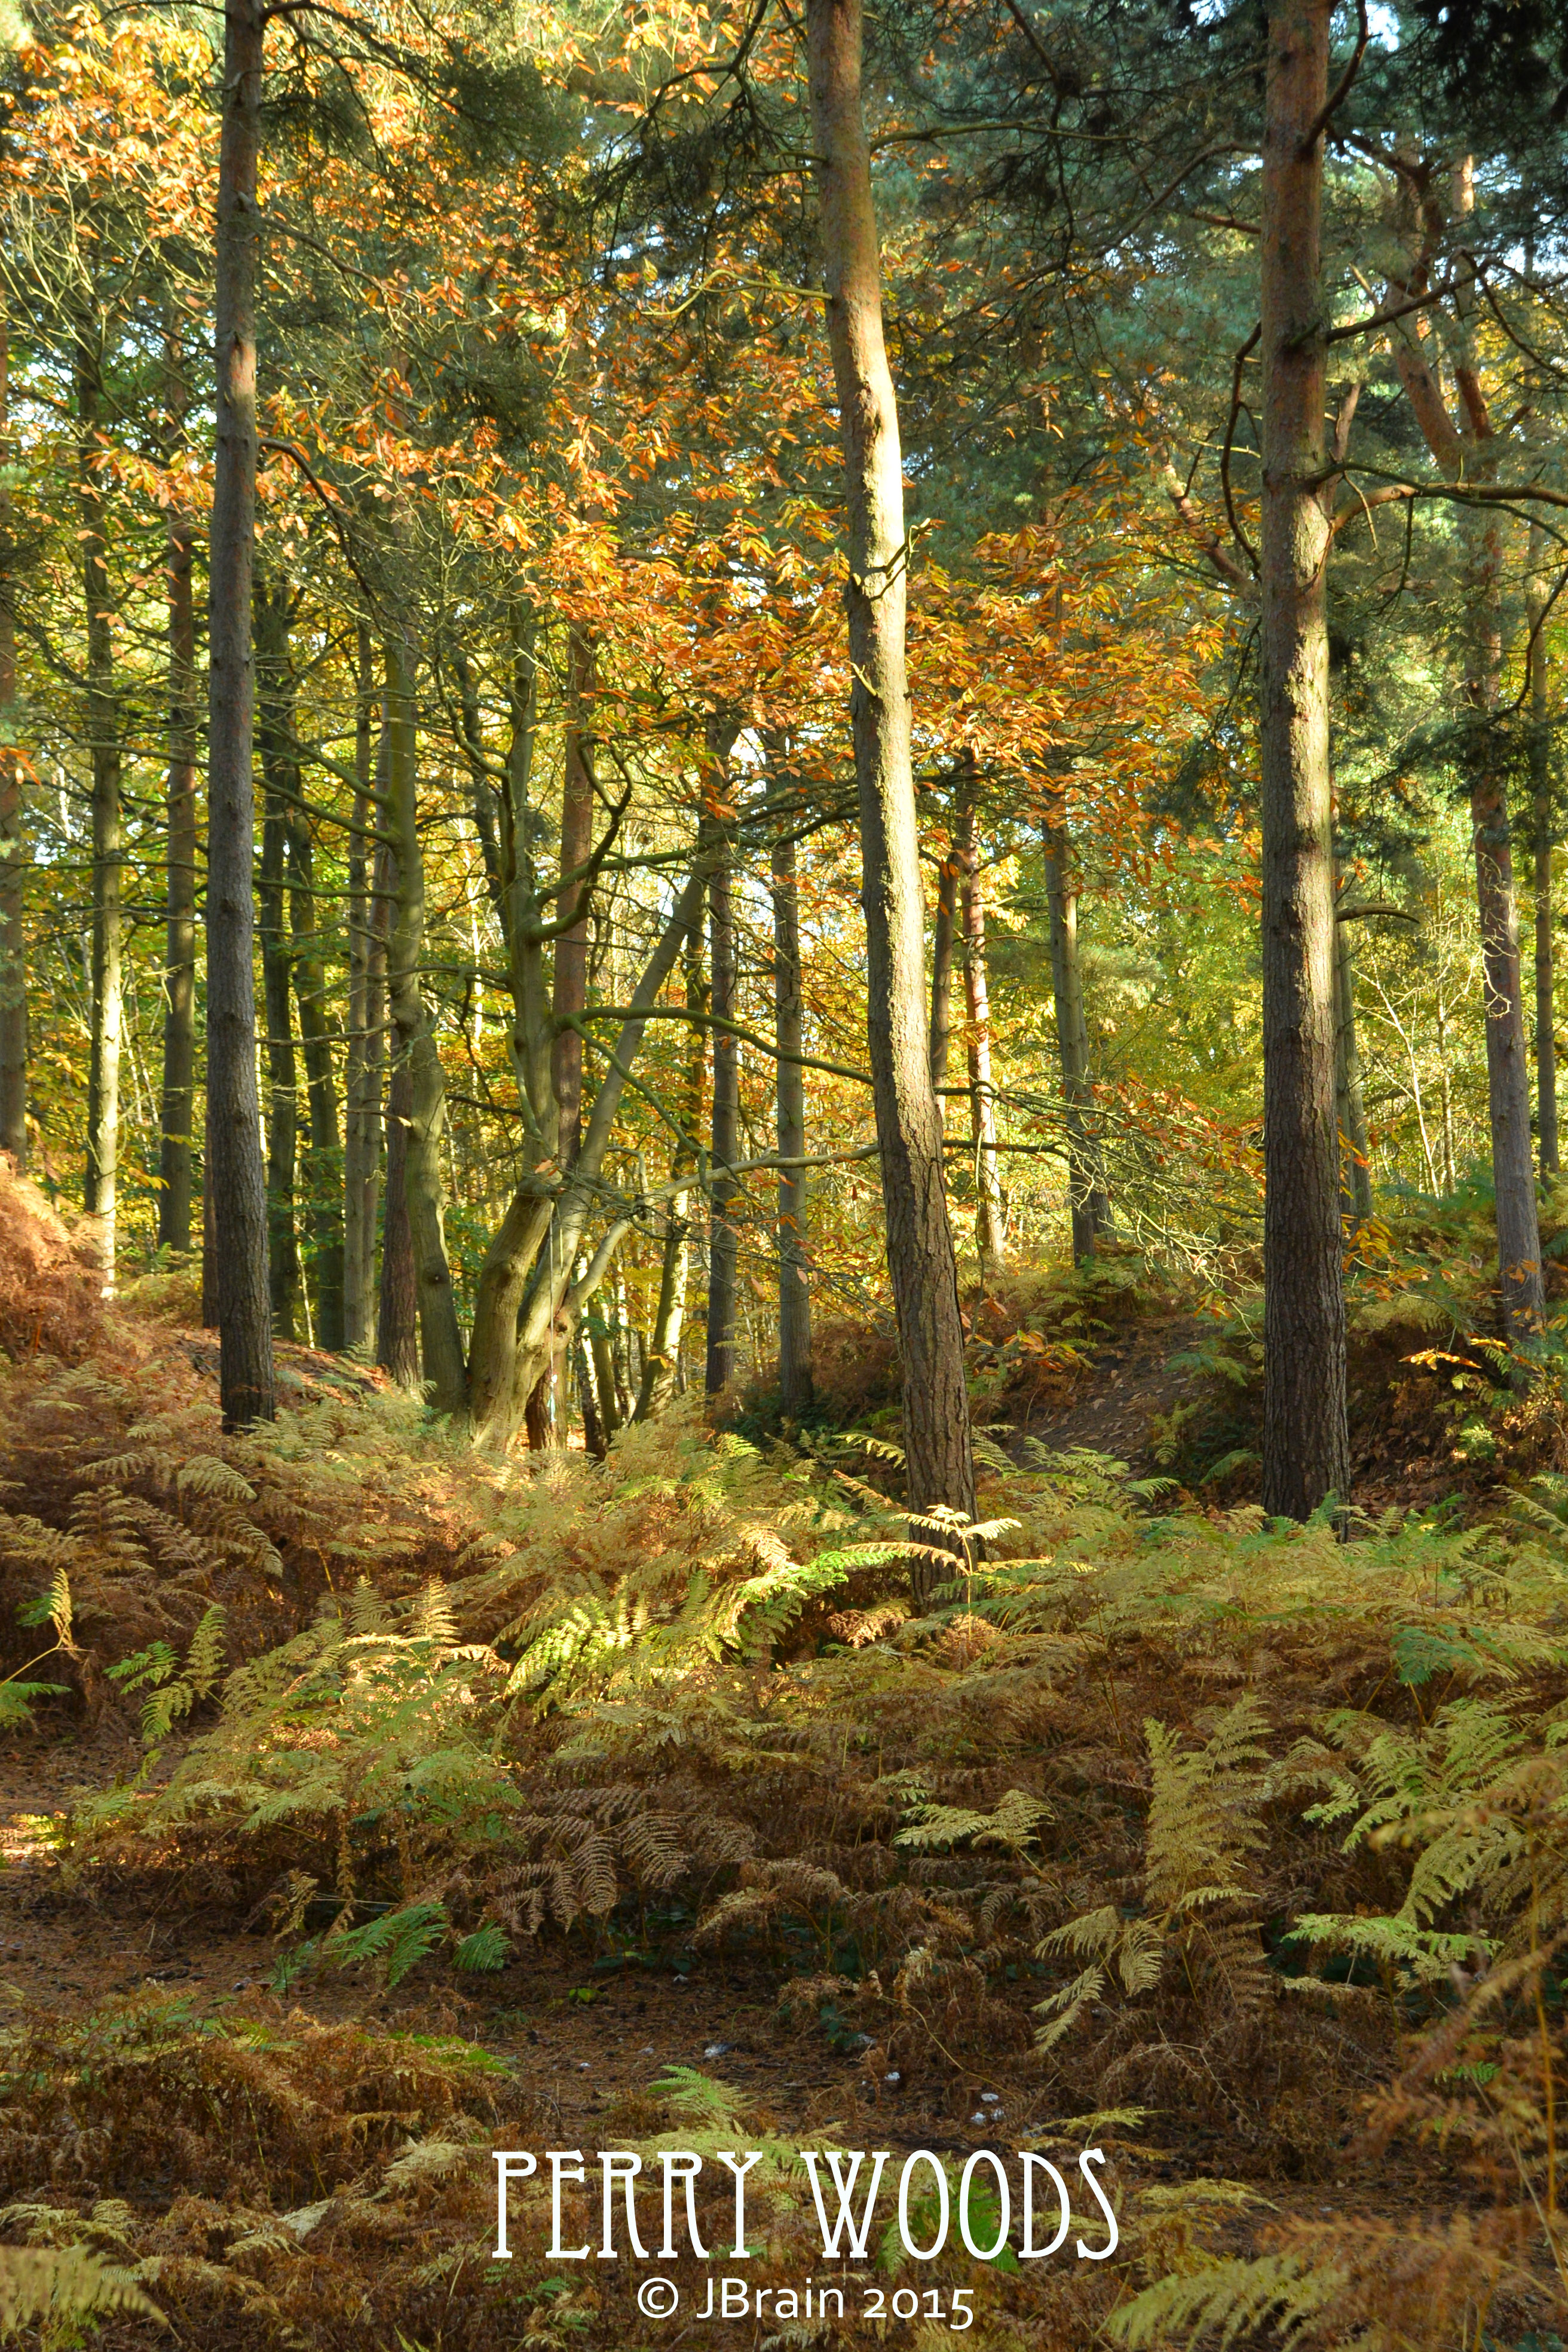 Perry Woods